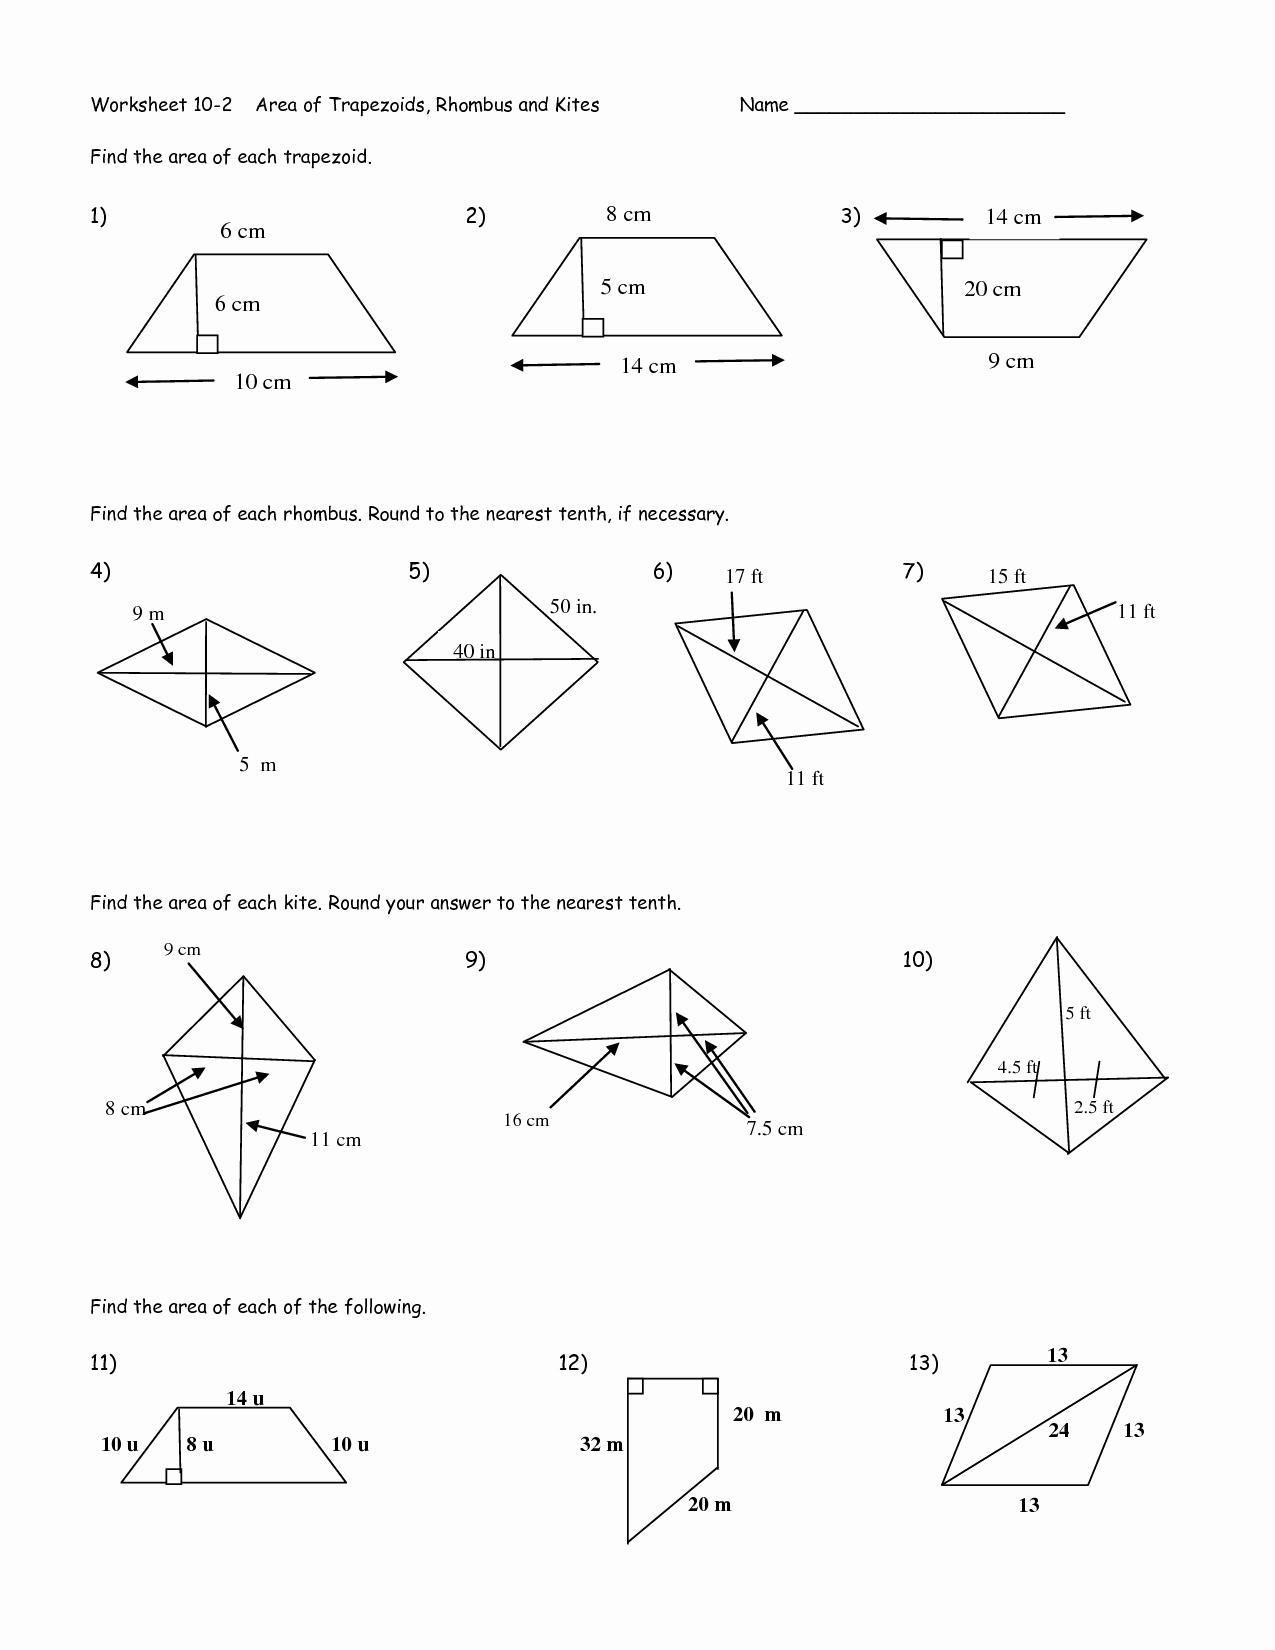 Area Of Rhombus Worksheet New 12 Best Of Trap and Kites Worksheet Geometry